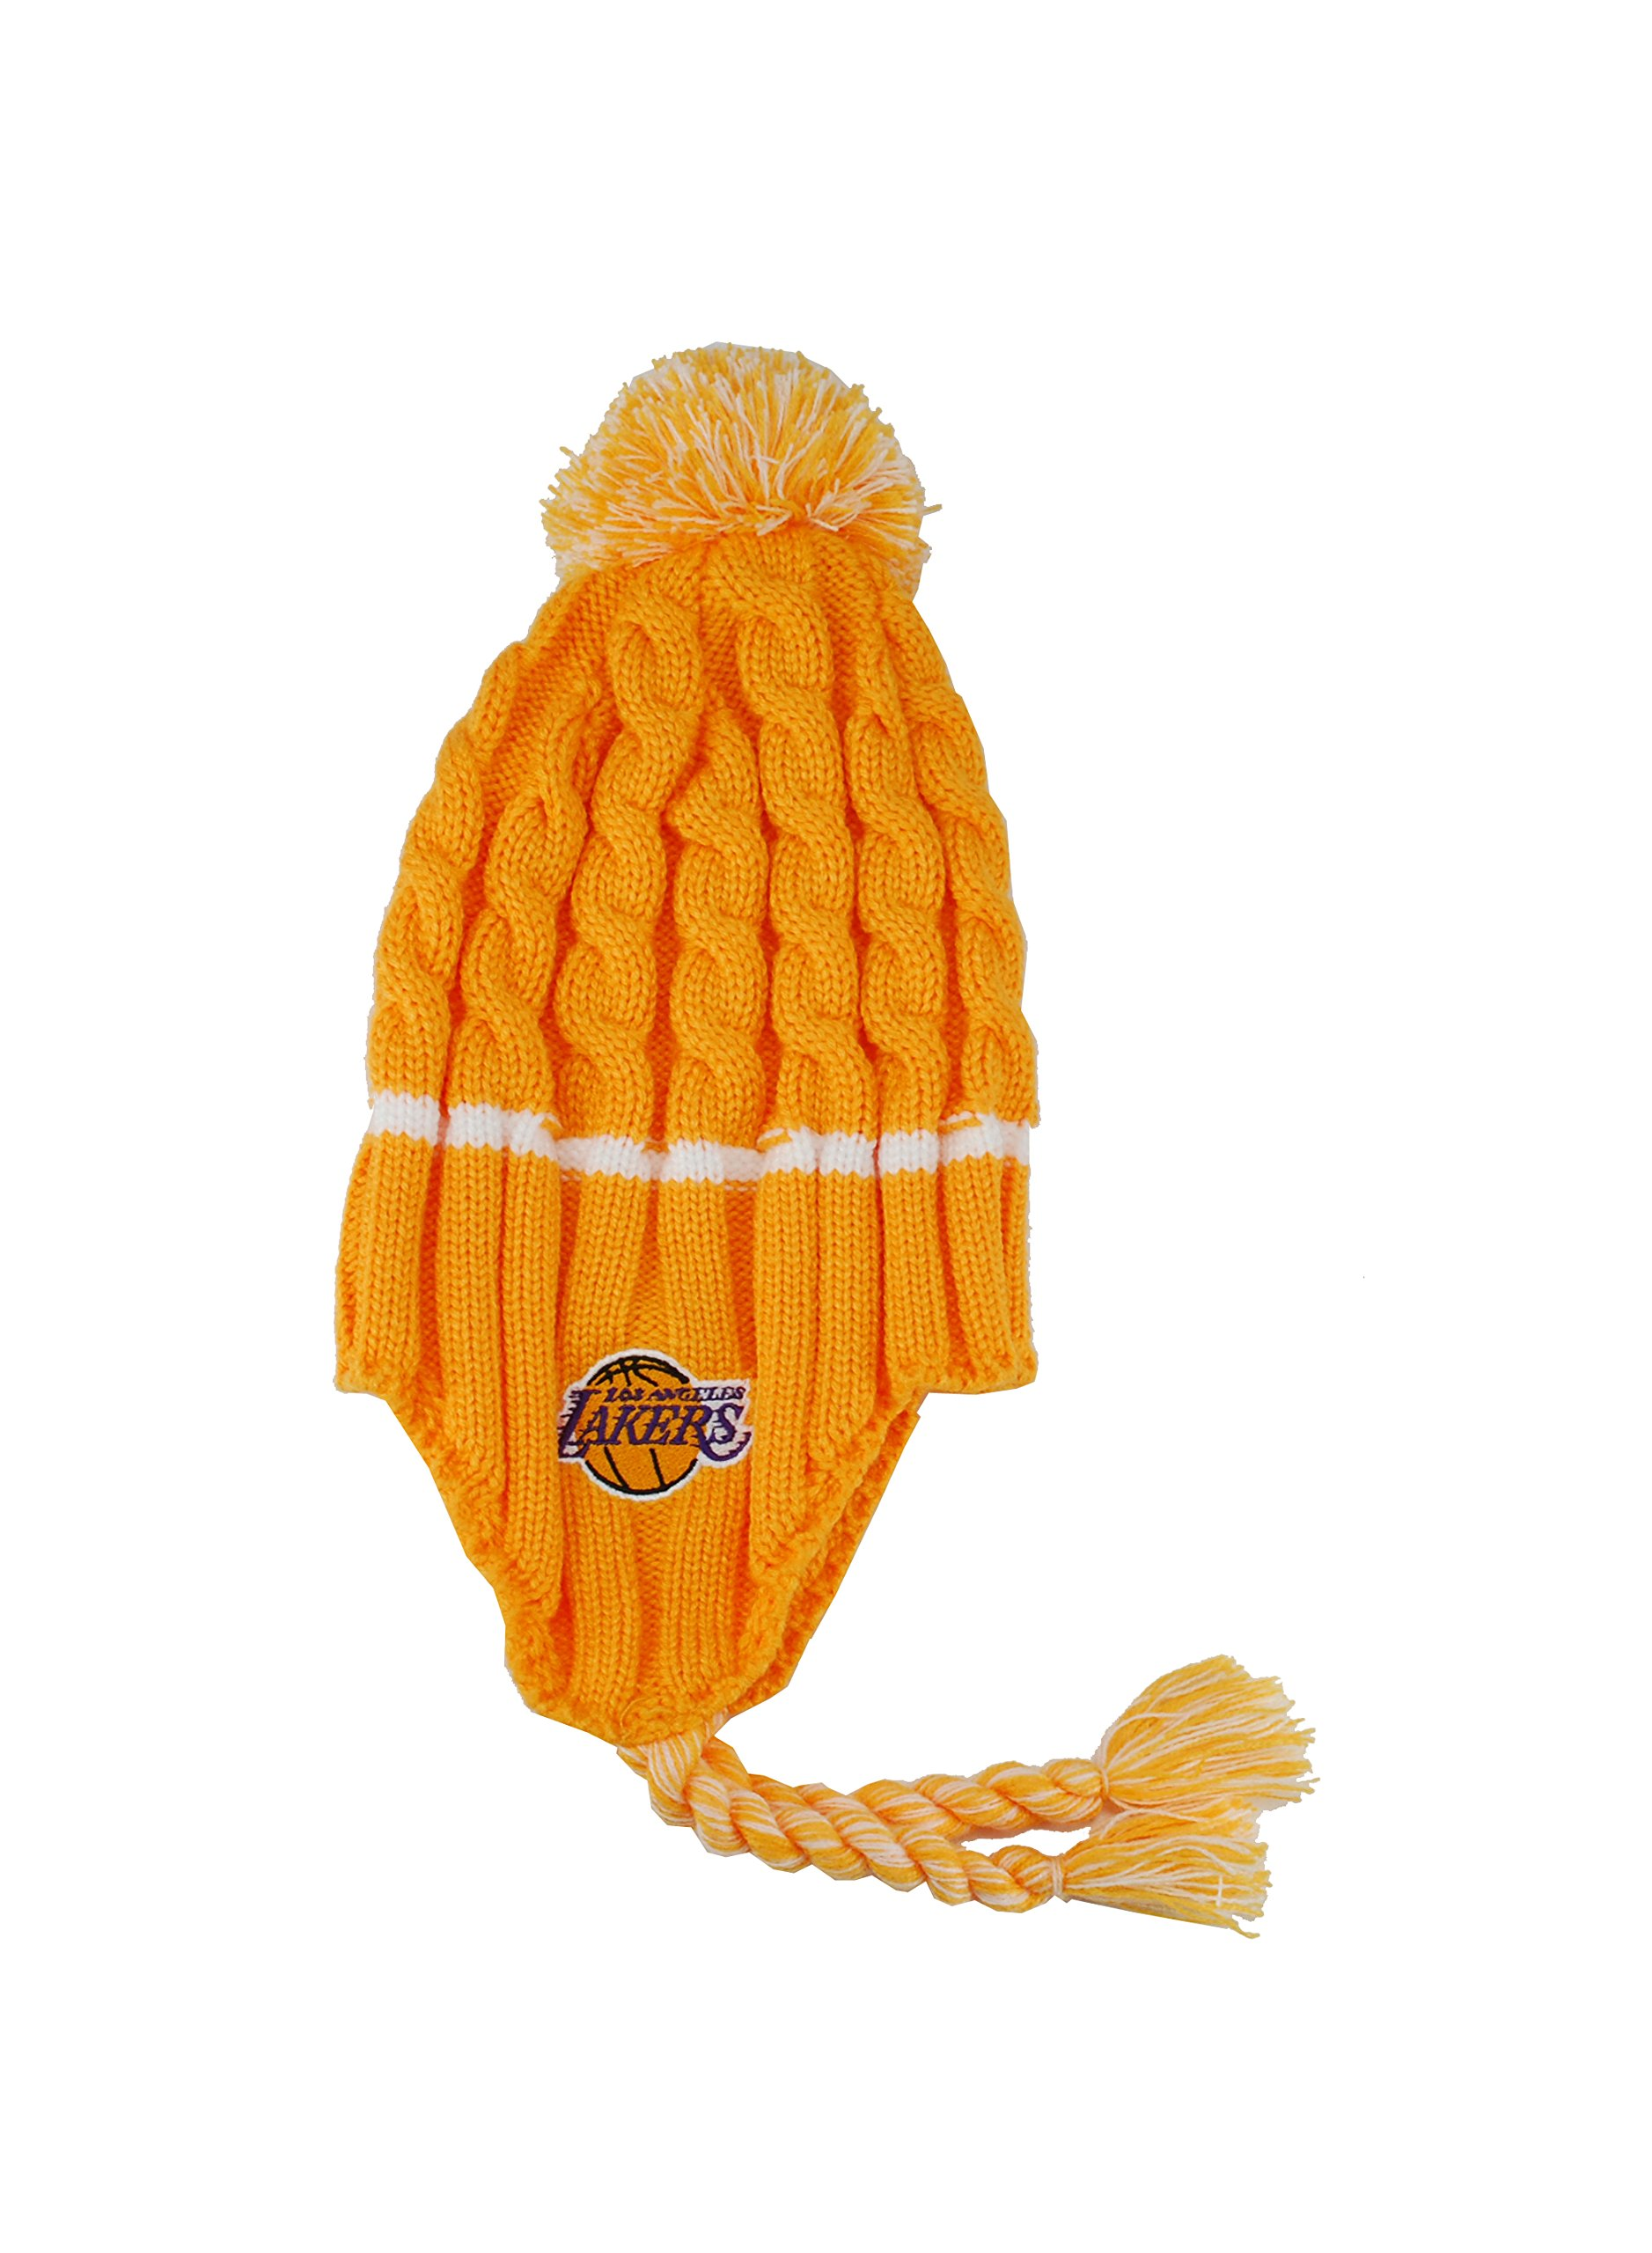 Adidas Kid's Los Angeles Lakers Headwear Tassle Gold/White Beanie by adidas (Image #1)